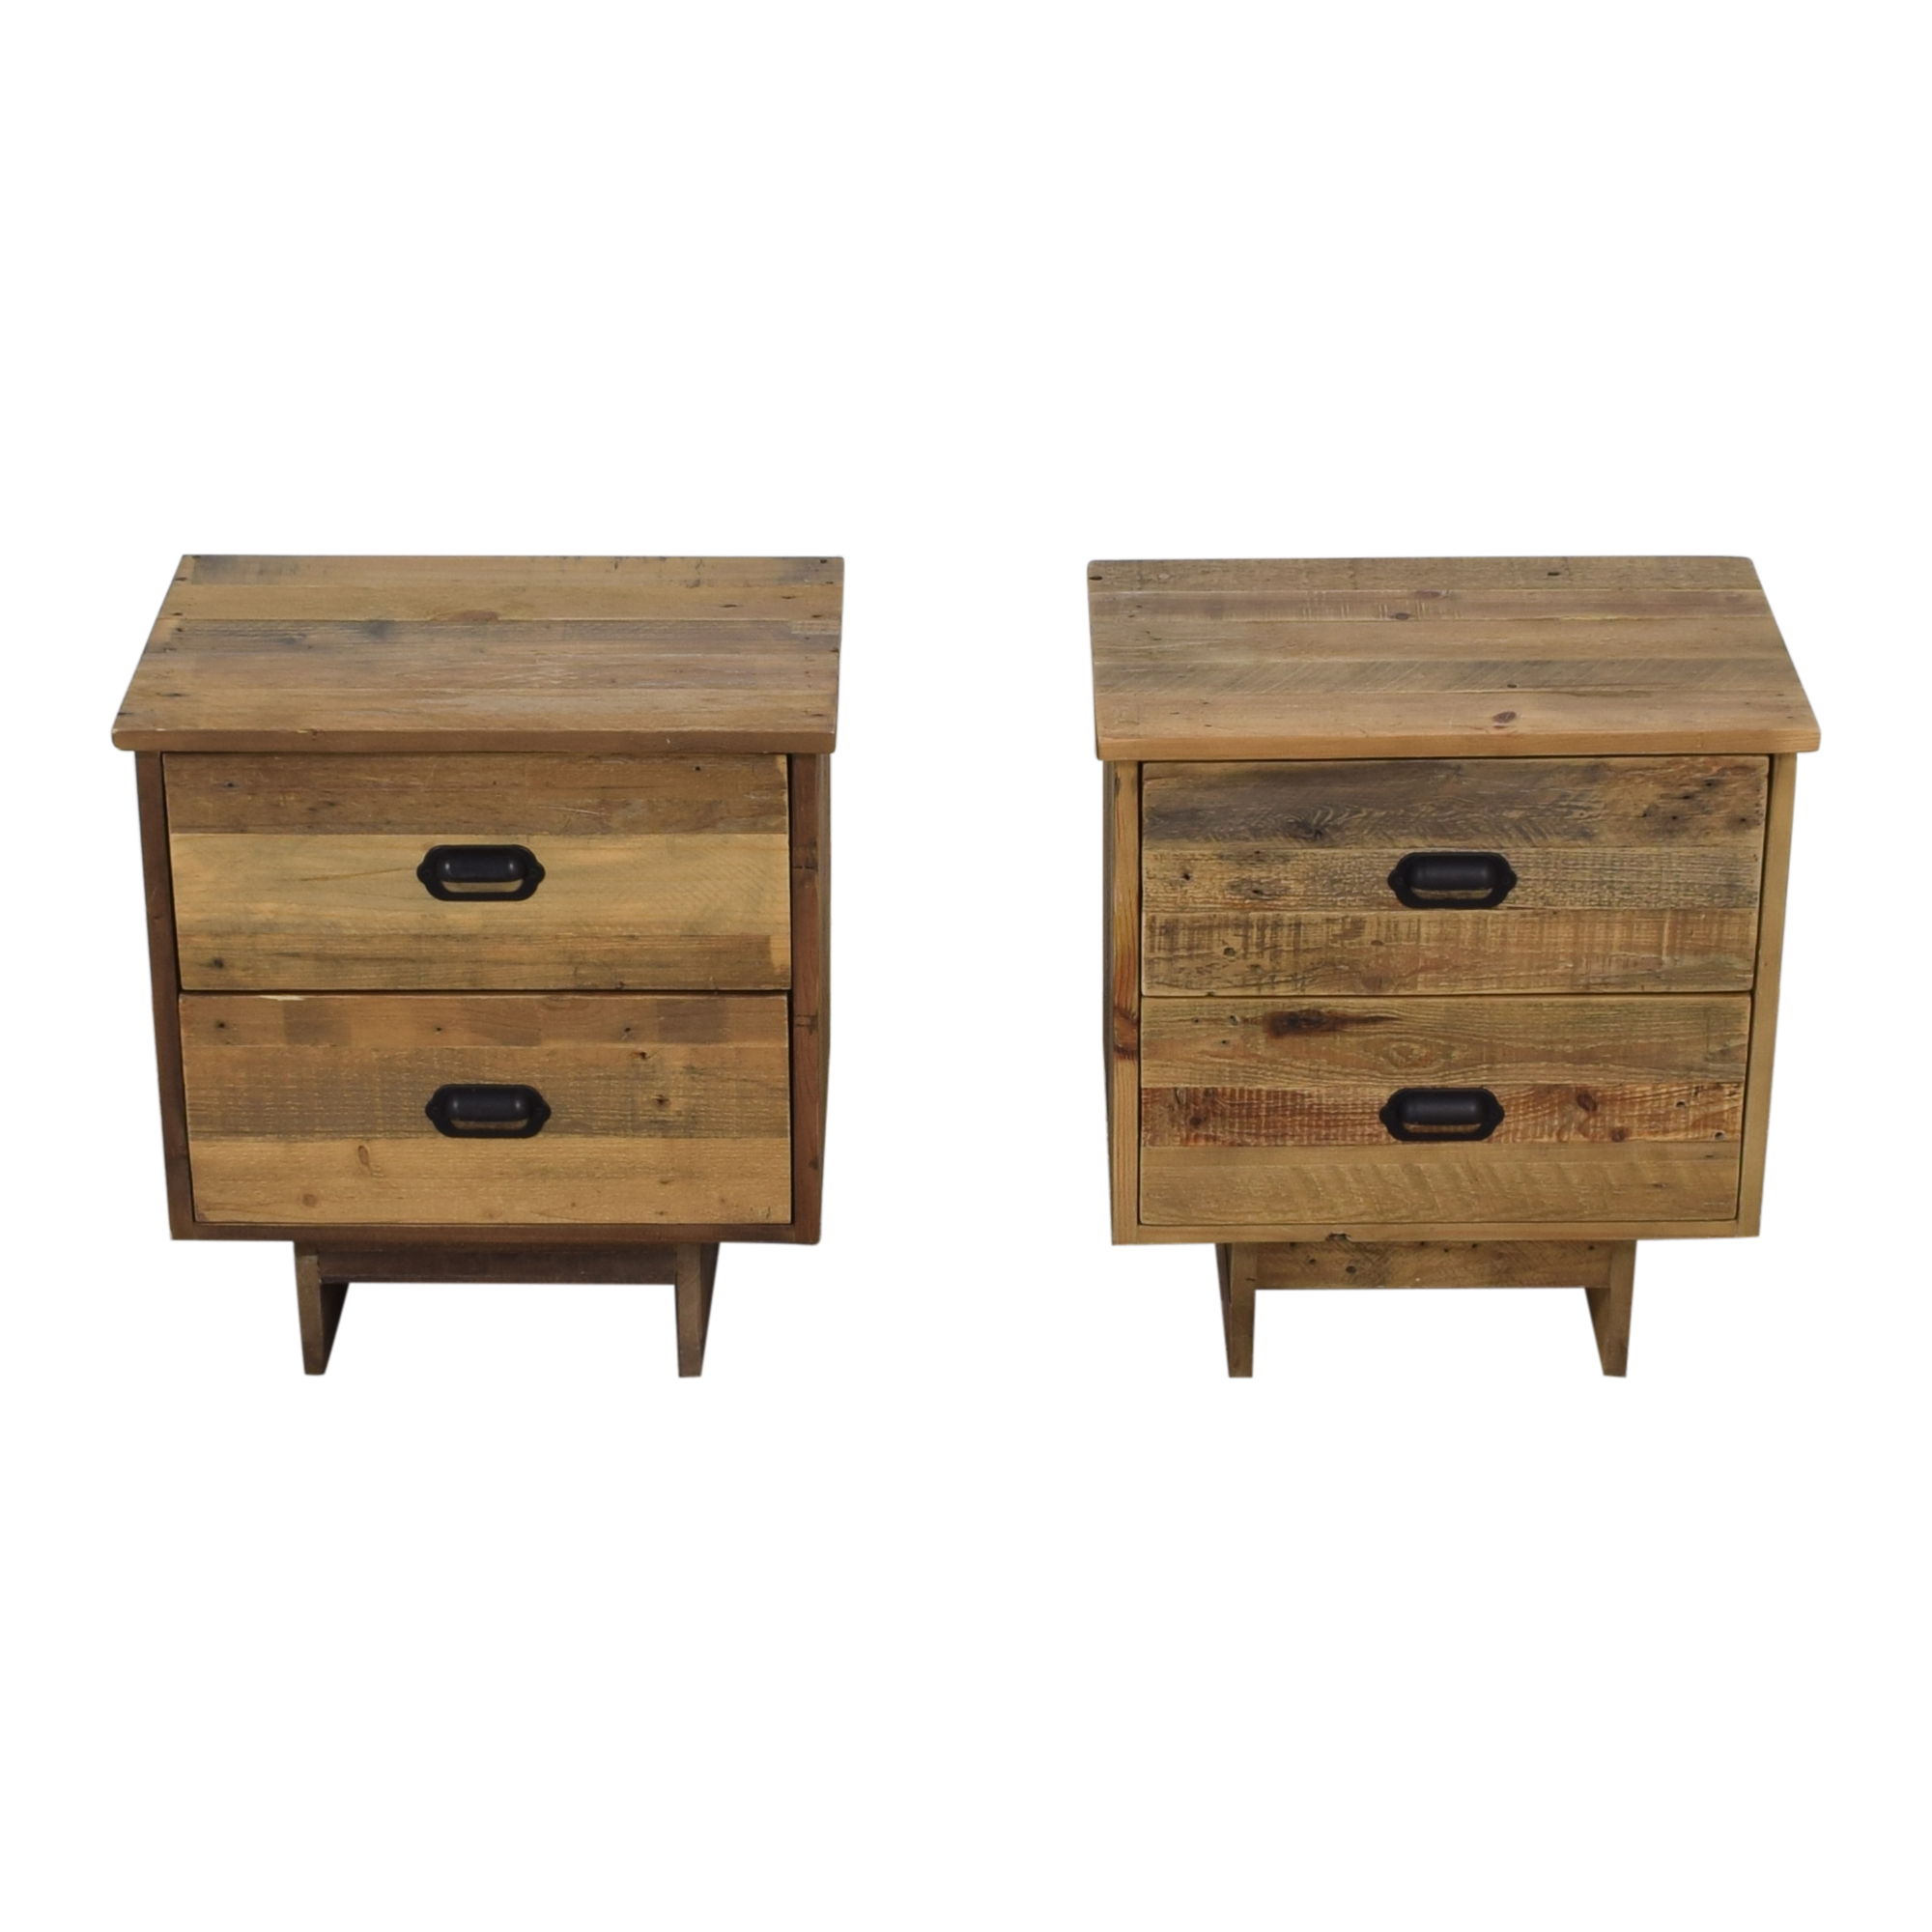 PGT Reclaimed PGT Reclaimed Wood Nighstands coupon